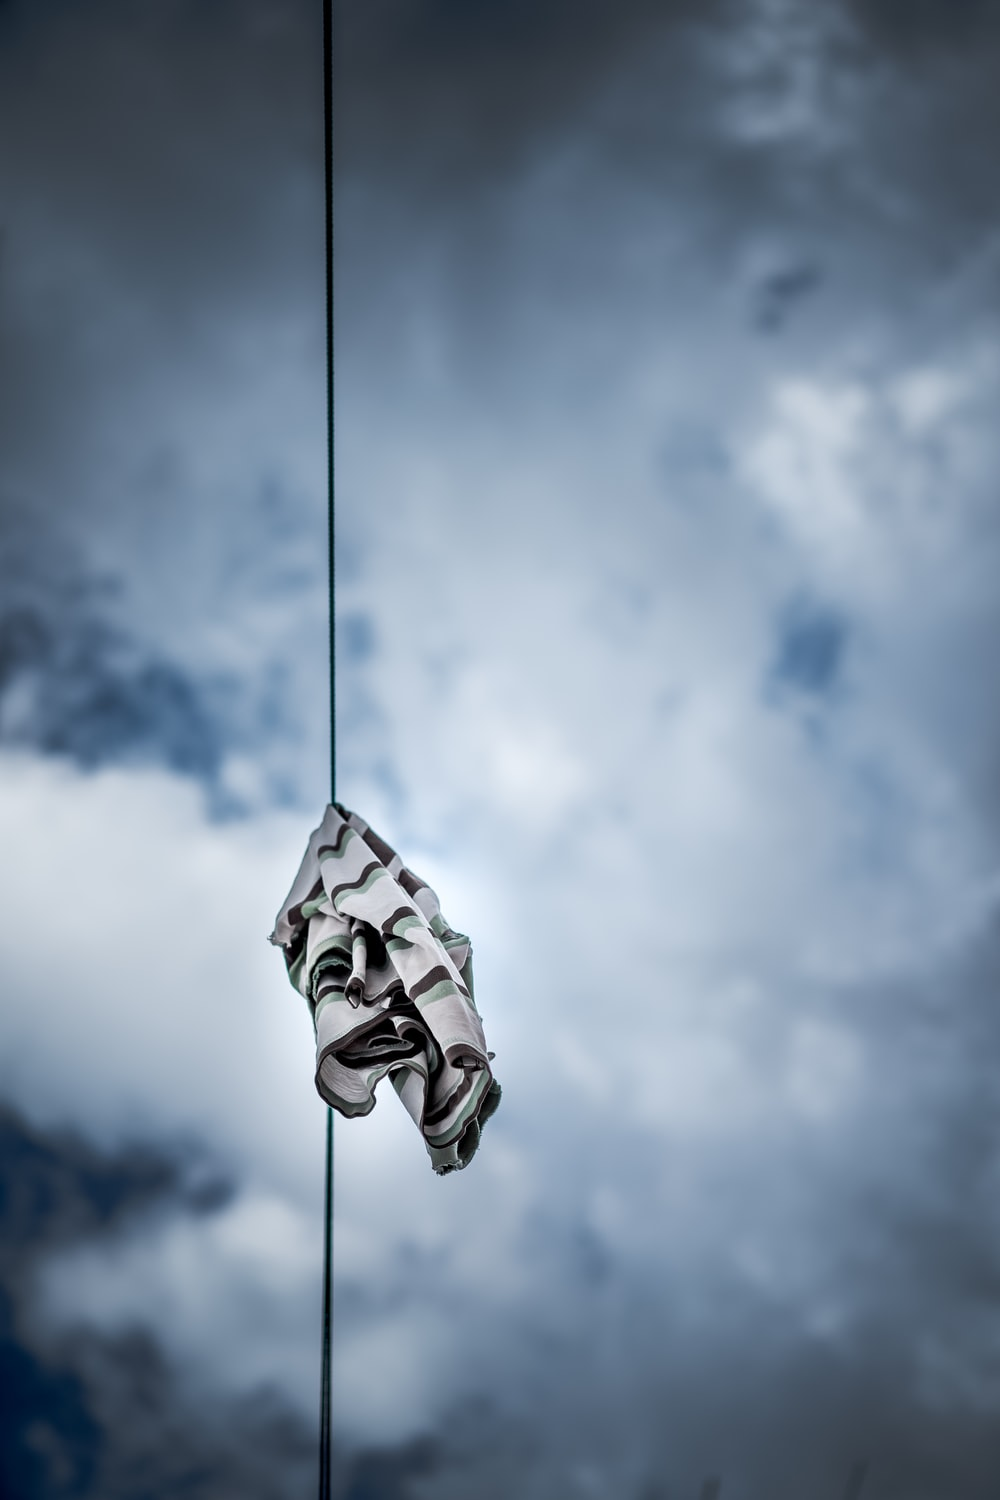 black and gray striped textile hanged from black cable during cloudy day